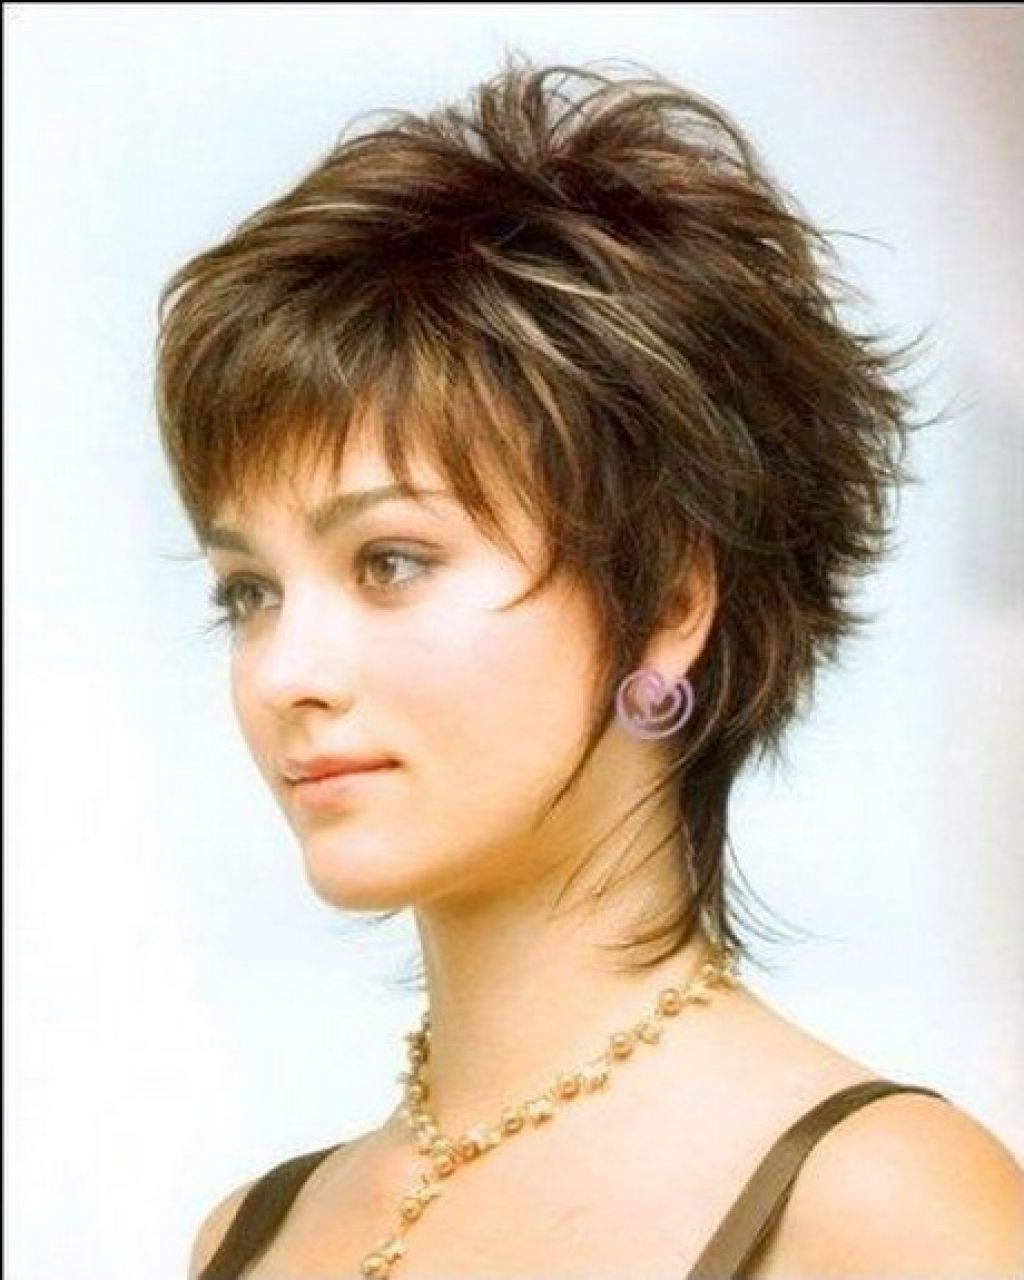 Medium Shaggy Hairstyles For Women Over Short Shaggy Hairstyles Regarding Best And Newest Short Shaggy Hairstyles For Round Faces (View 12 of 15)